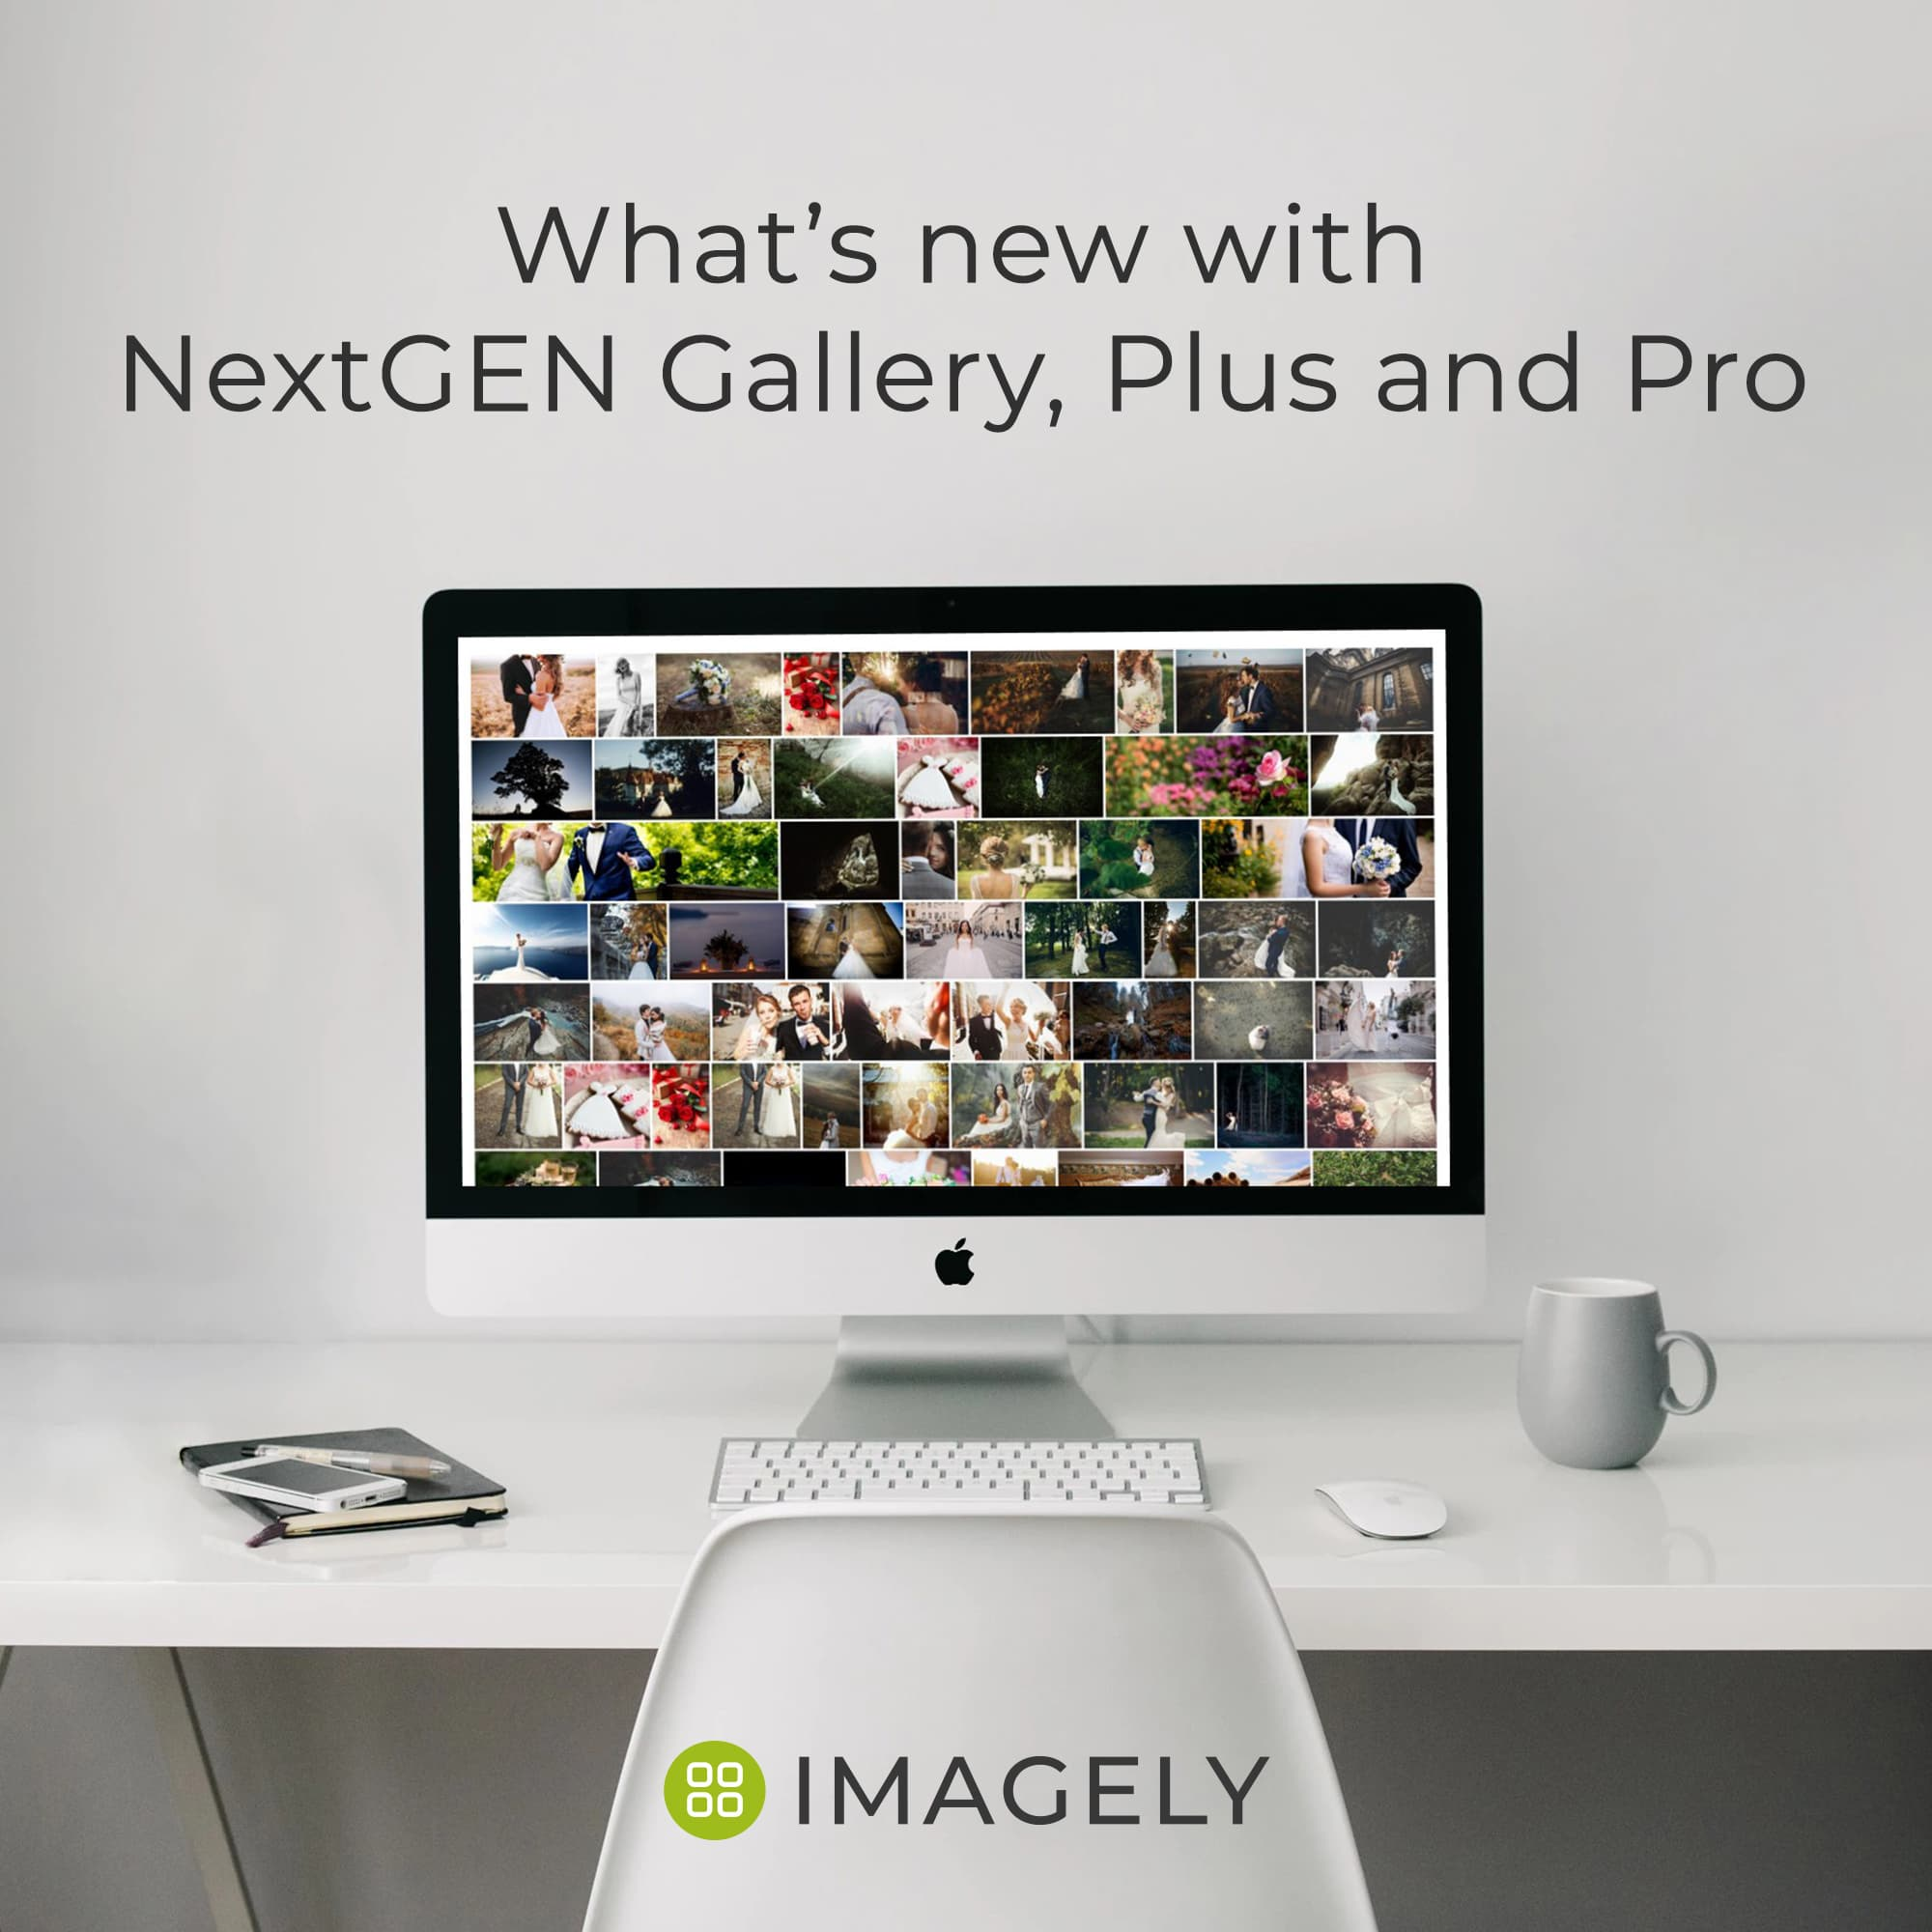 NextGEN Gallery 3.2.4 Now Available